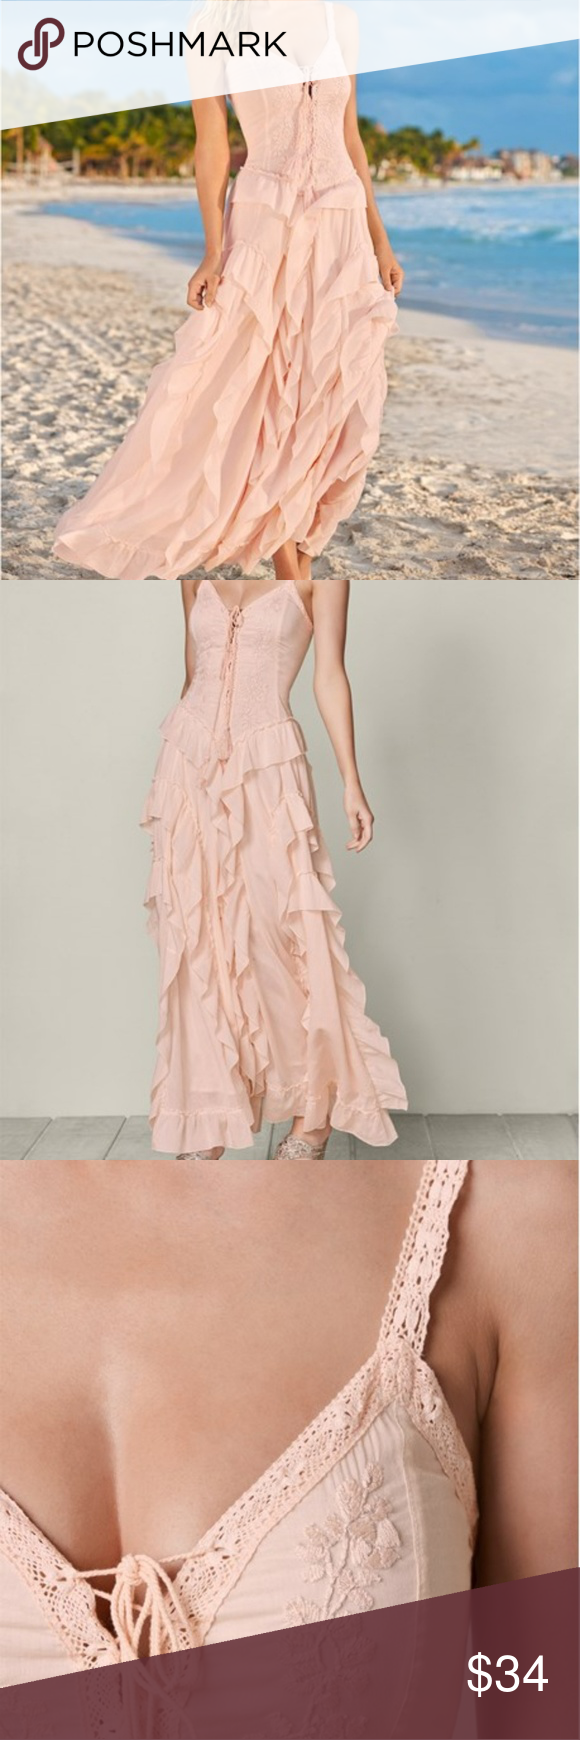 895433bf2d232 Venus provides great quality, beautiful dresses for women. This is a new,  with tags Venus dress, size medium 8/10, lace up, ruffle detail, light pink  maxi ...